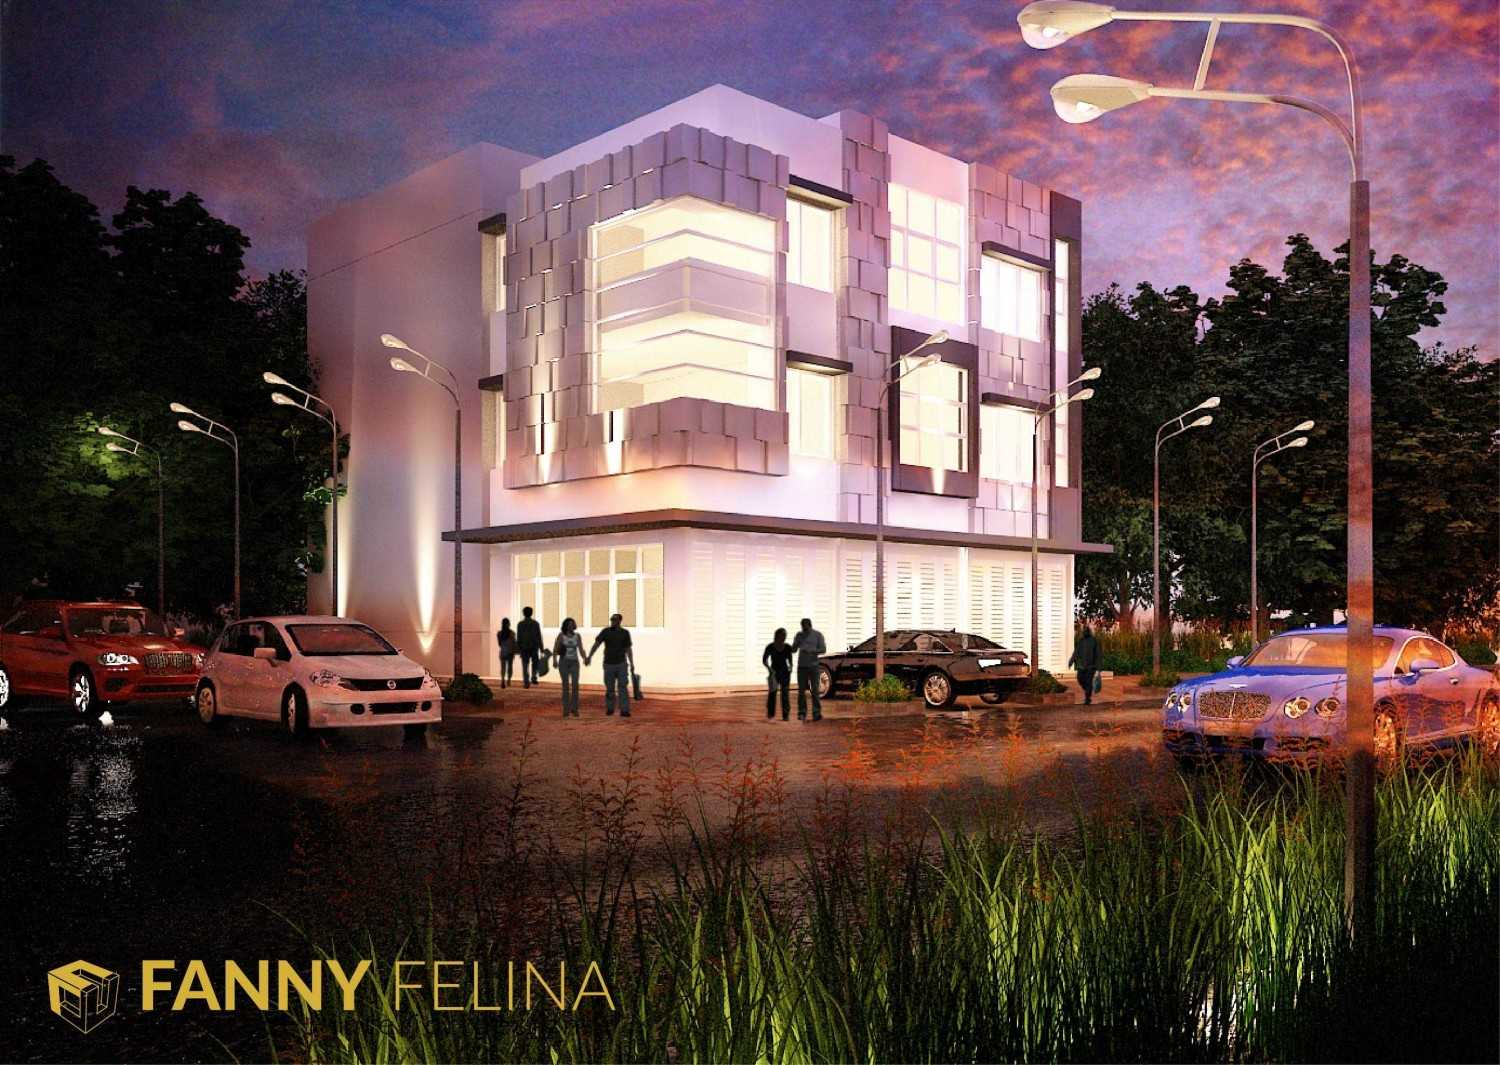 Fanny Felina Architecture & Interior Design Mulyosari 01 Shophouse Surabaya, Surabaya City, East Java, Indonesia Surabaya, Surabaya City, East Java, Indonesia 01 Modern 34586